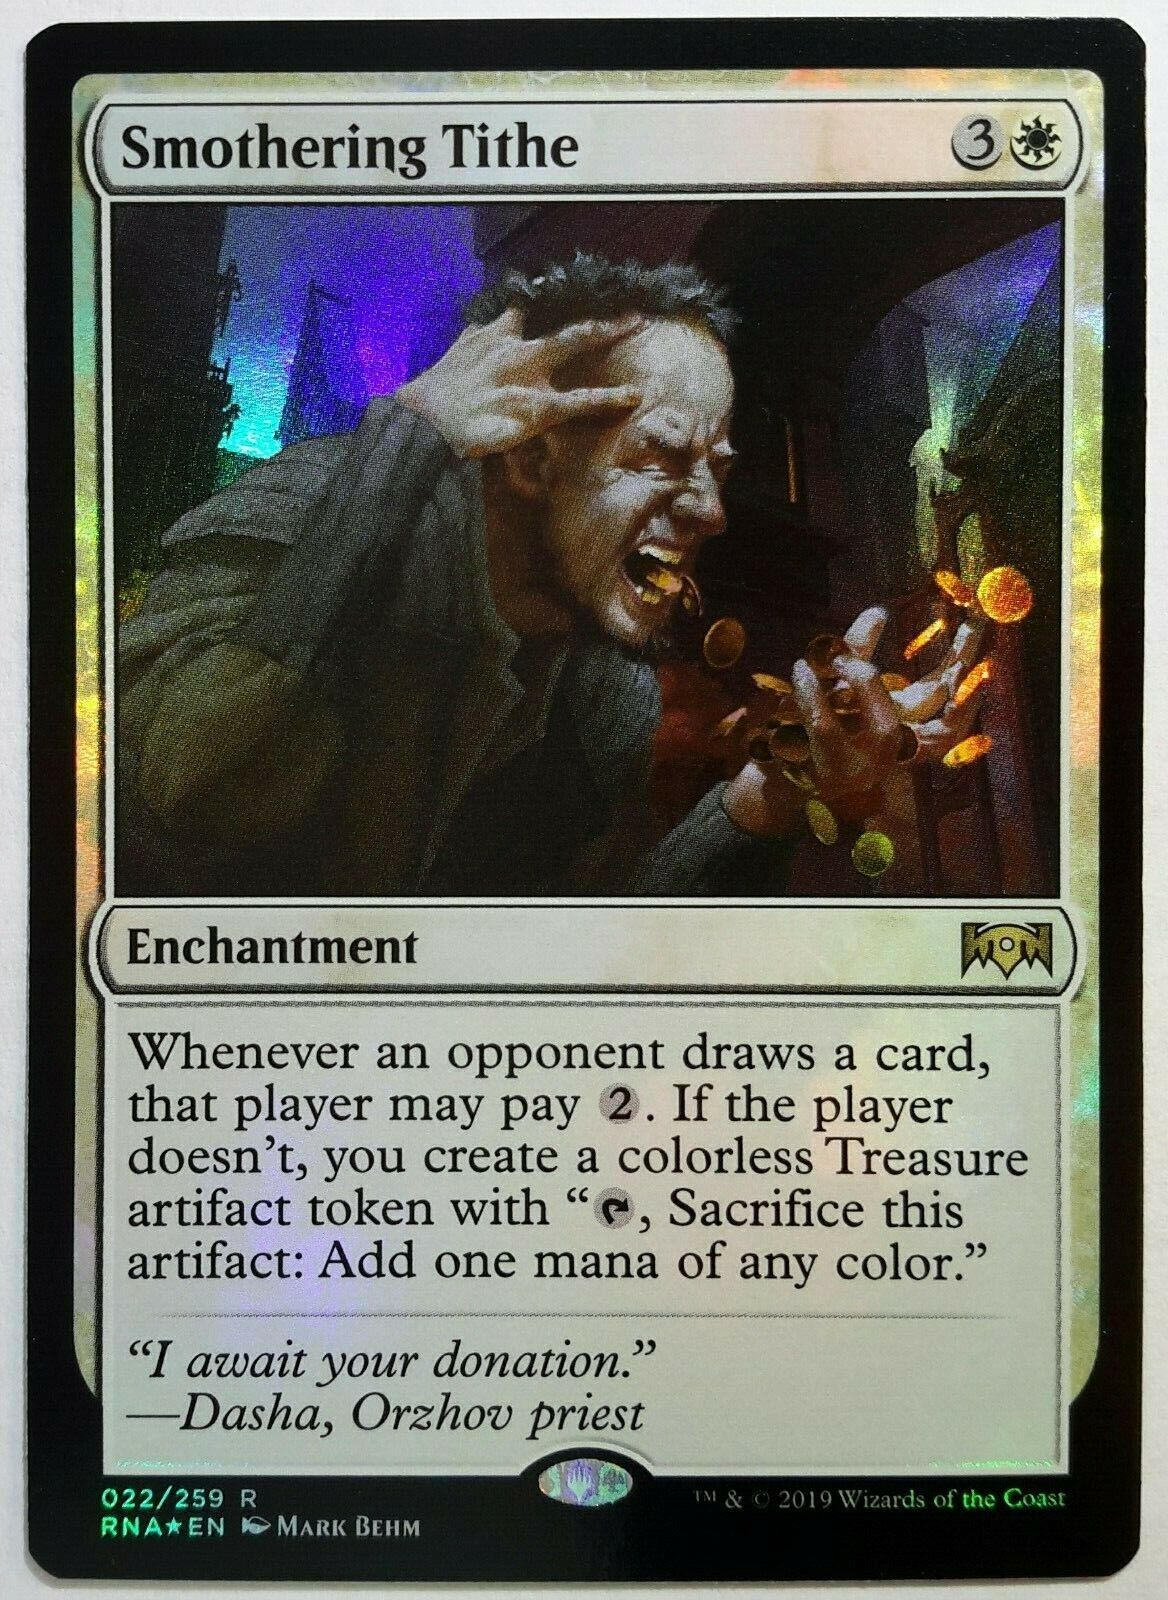 1 X Smothering Tithe White Enchantment New Ravnica Allegiance Mtg Rare Collectible Card Games Toys Hobbies A nice midrange deck that makes use of the enchantment synergies offered in theros. experts kg